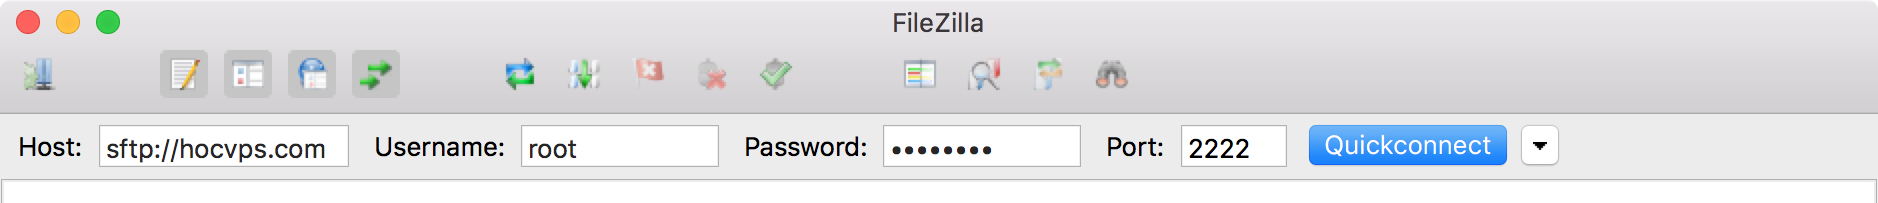 FileZilla Quick Connect